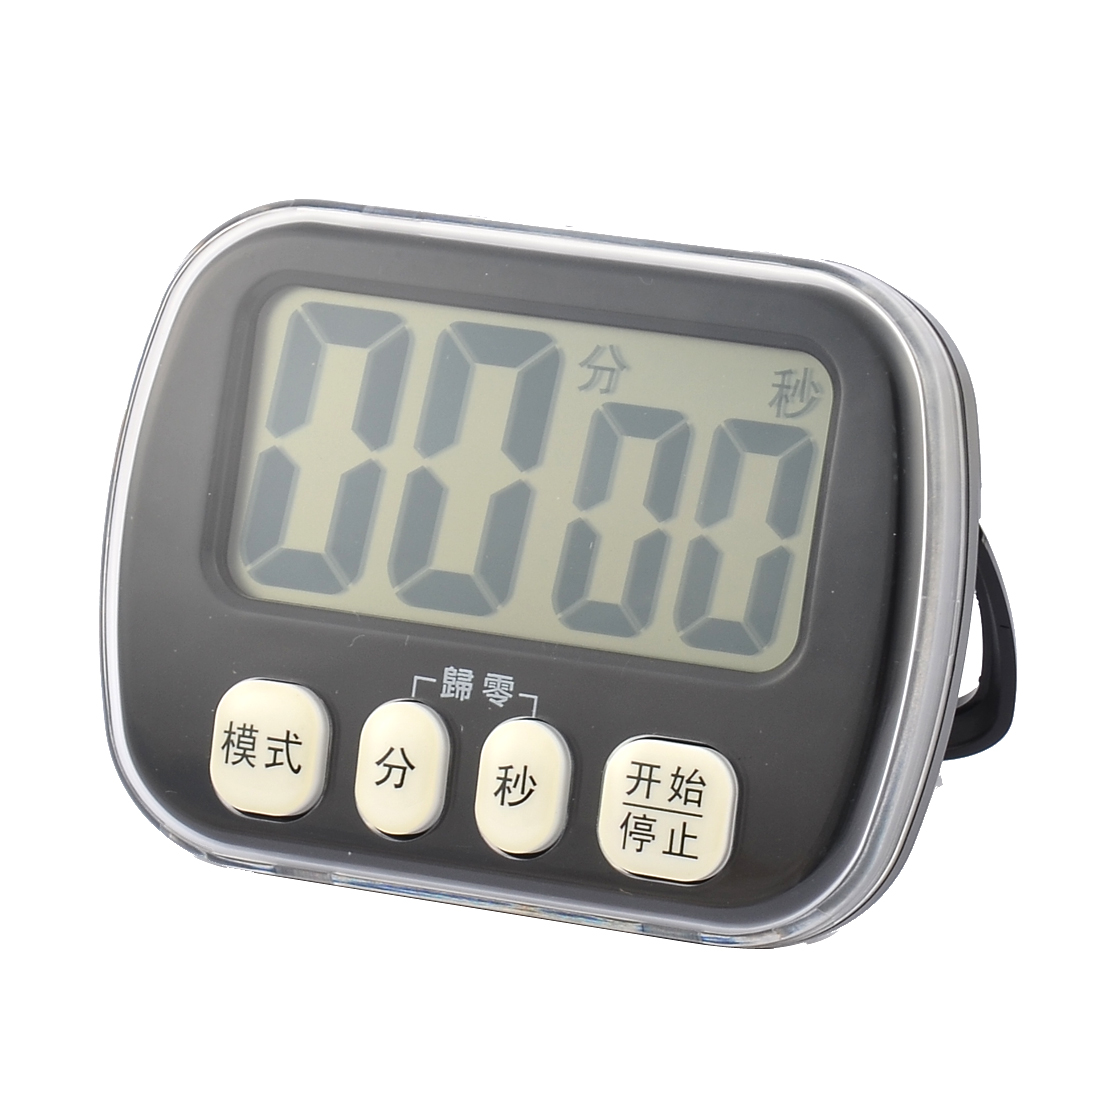 ABS Battery Powered LCD Digital Second Minute Count Down Up Timer Clock Black